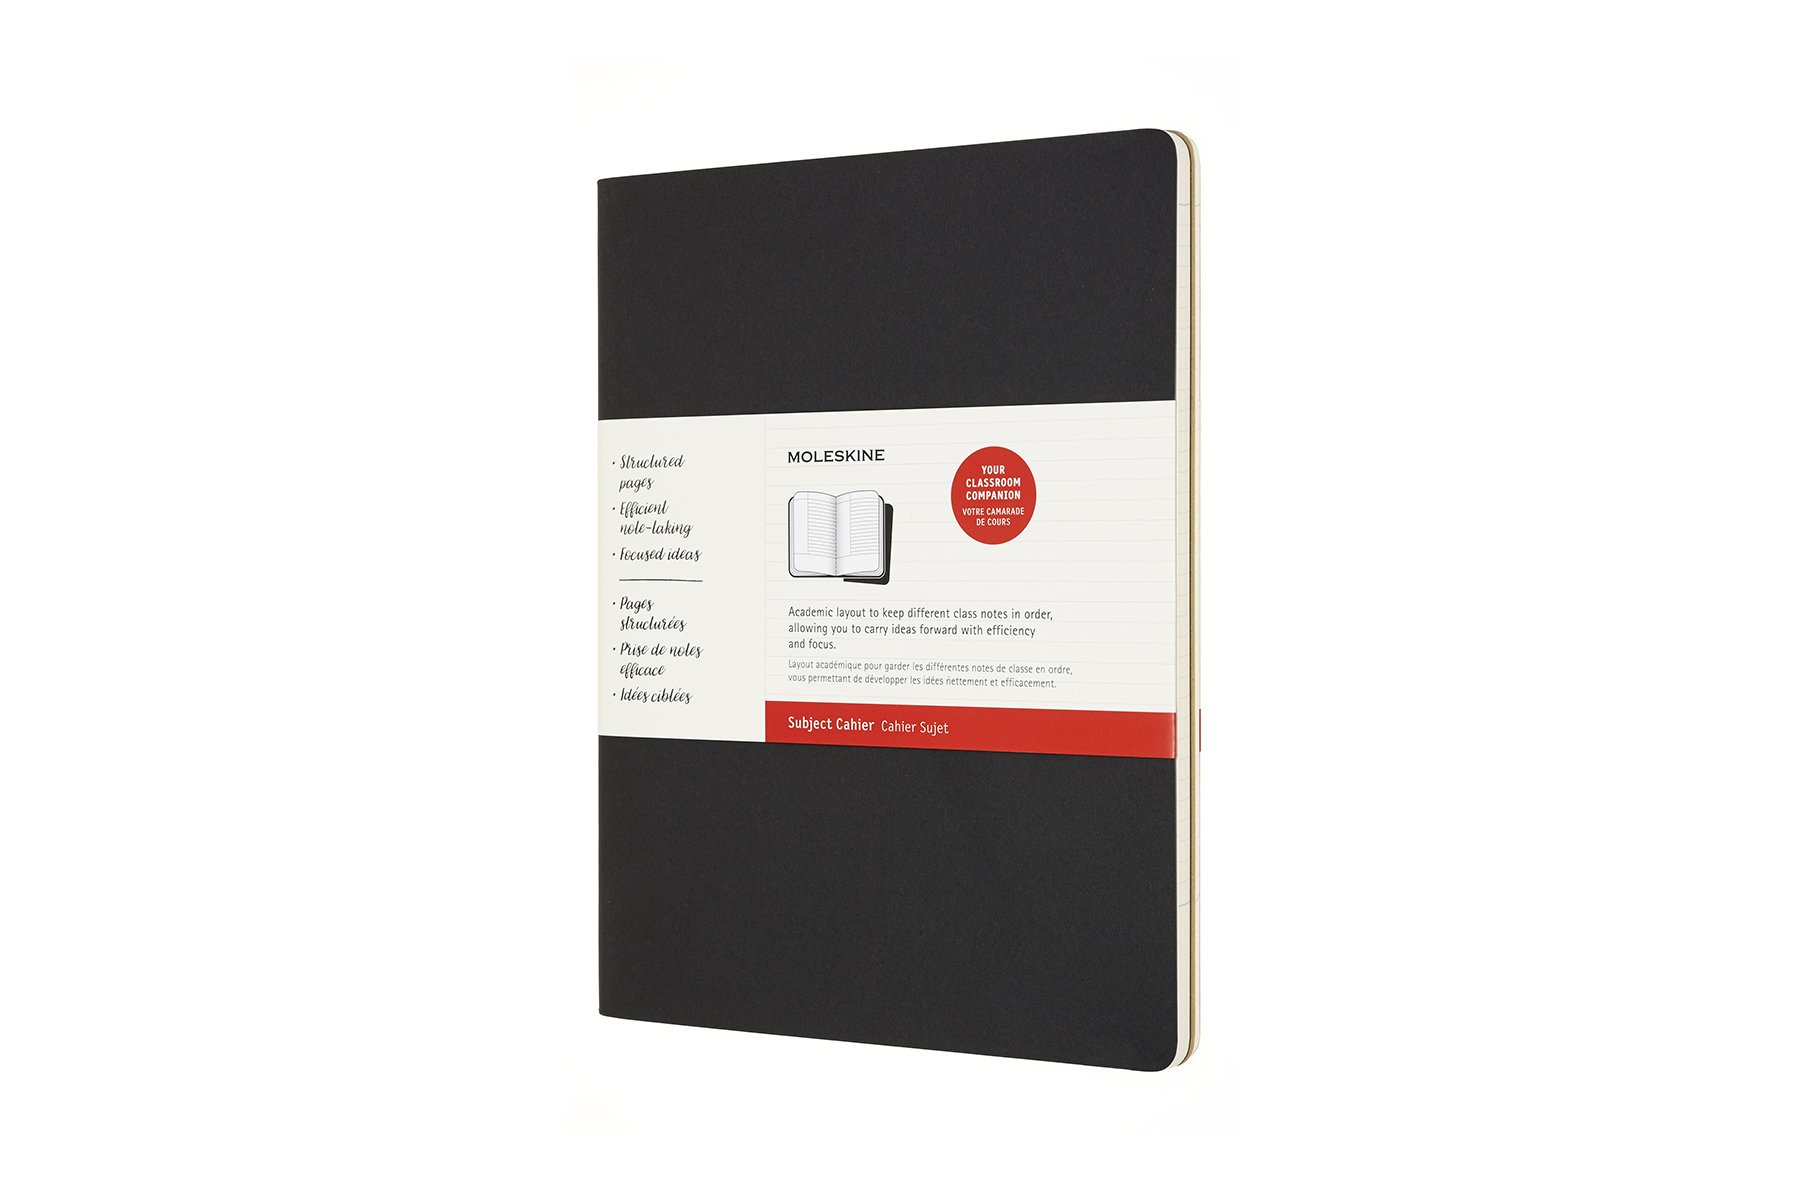 Moleskine Subject Cahier Soft Cover Journal, Set of 2, XXL..